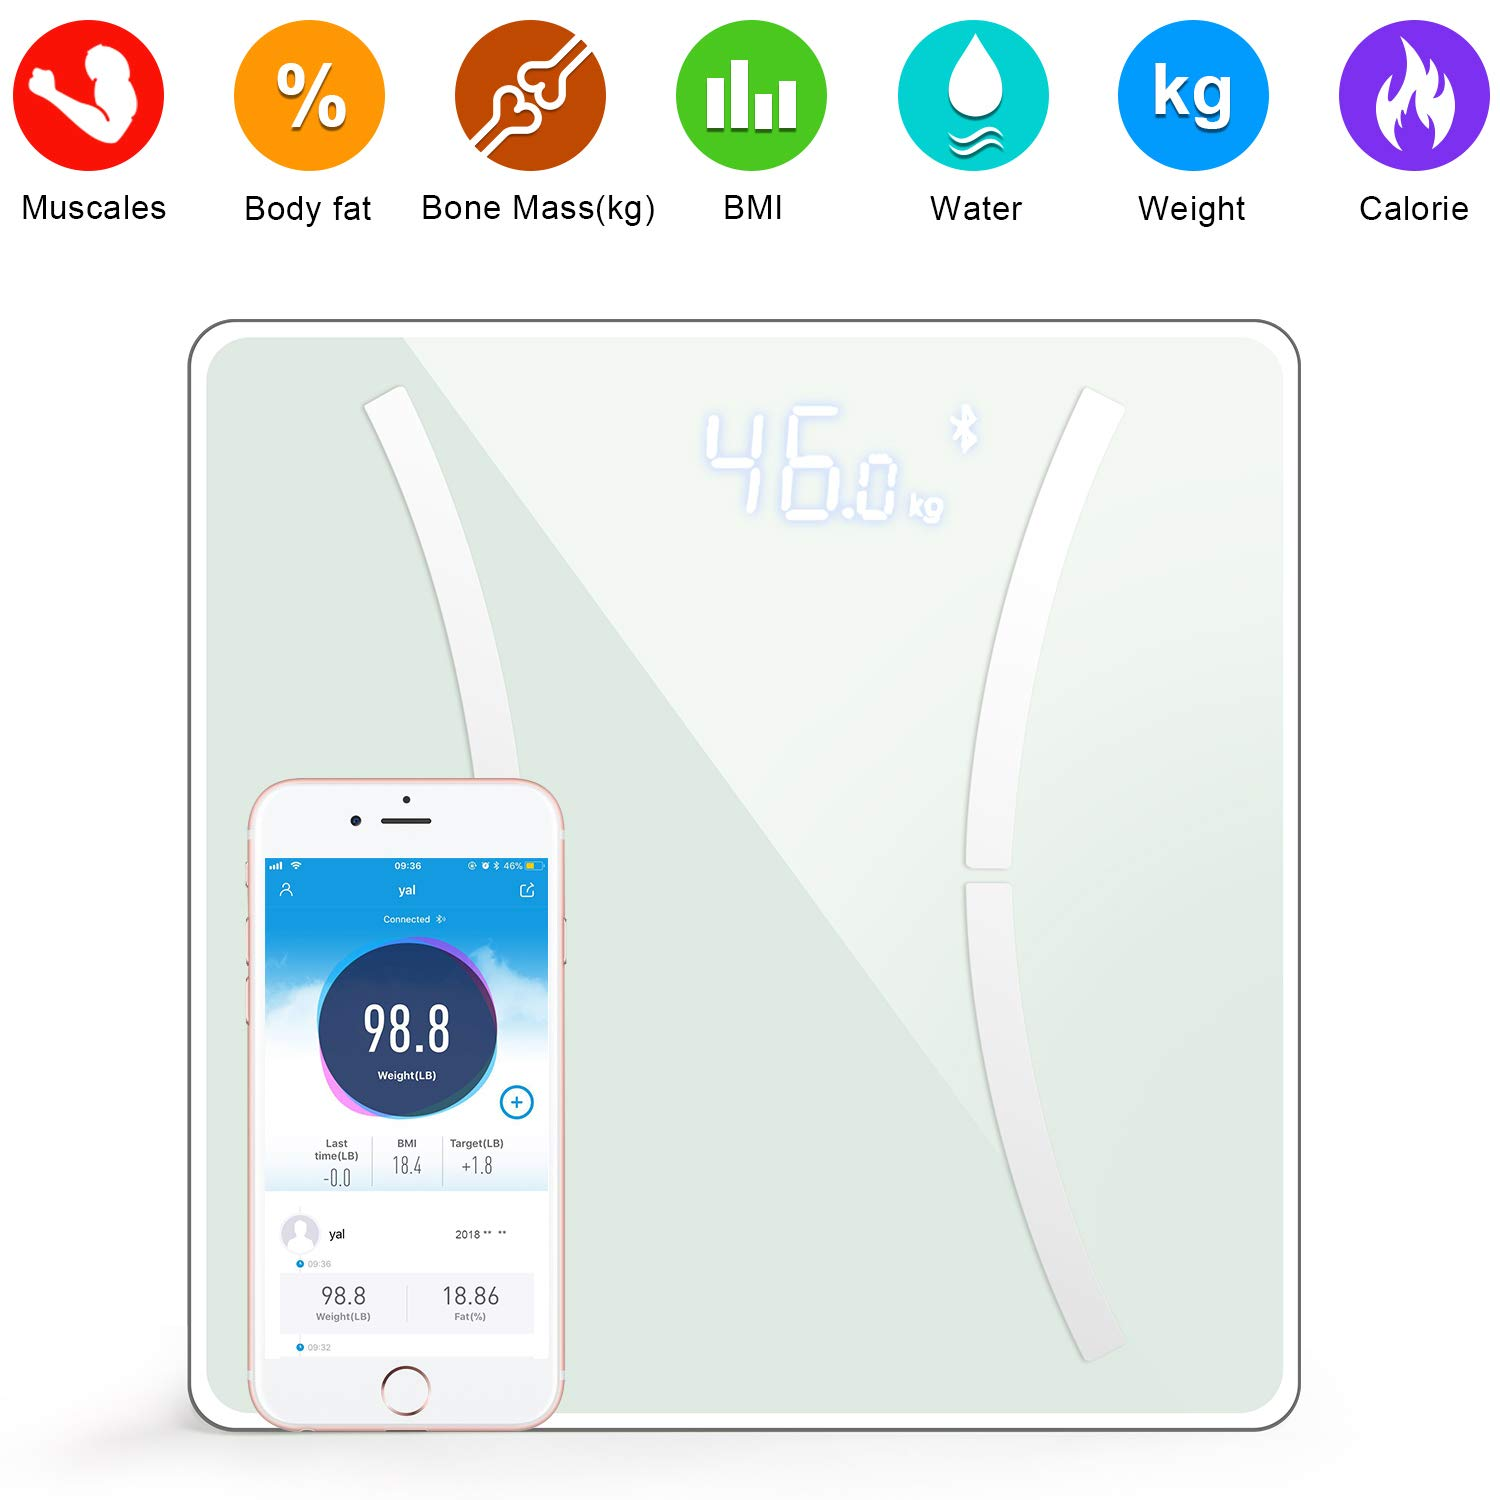 Digital Body Weight Bathroom Scale Smart Wireless Scale with Step-On Technology, Body Composition Analyzer for Body Weight, Fat, Water, BMI, BMR, Muscle Mass